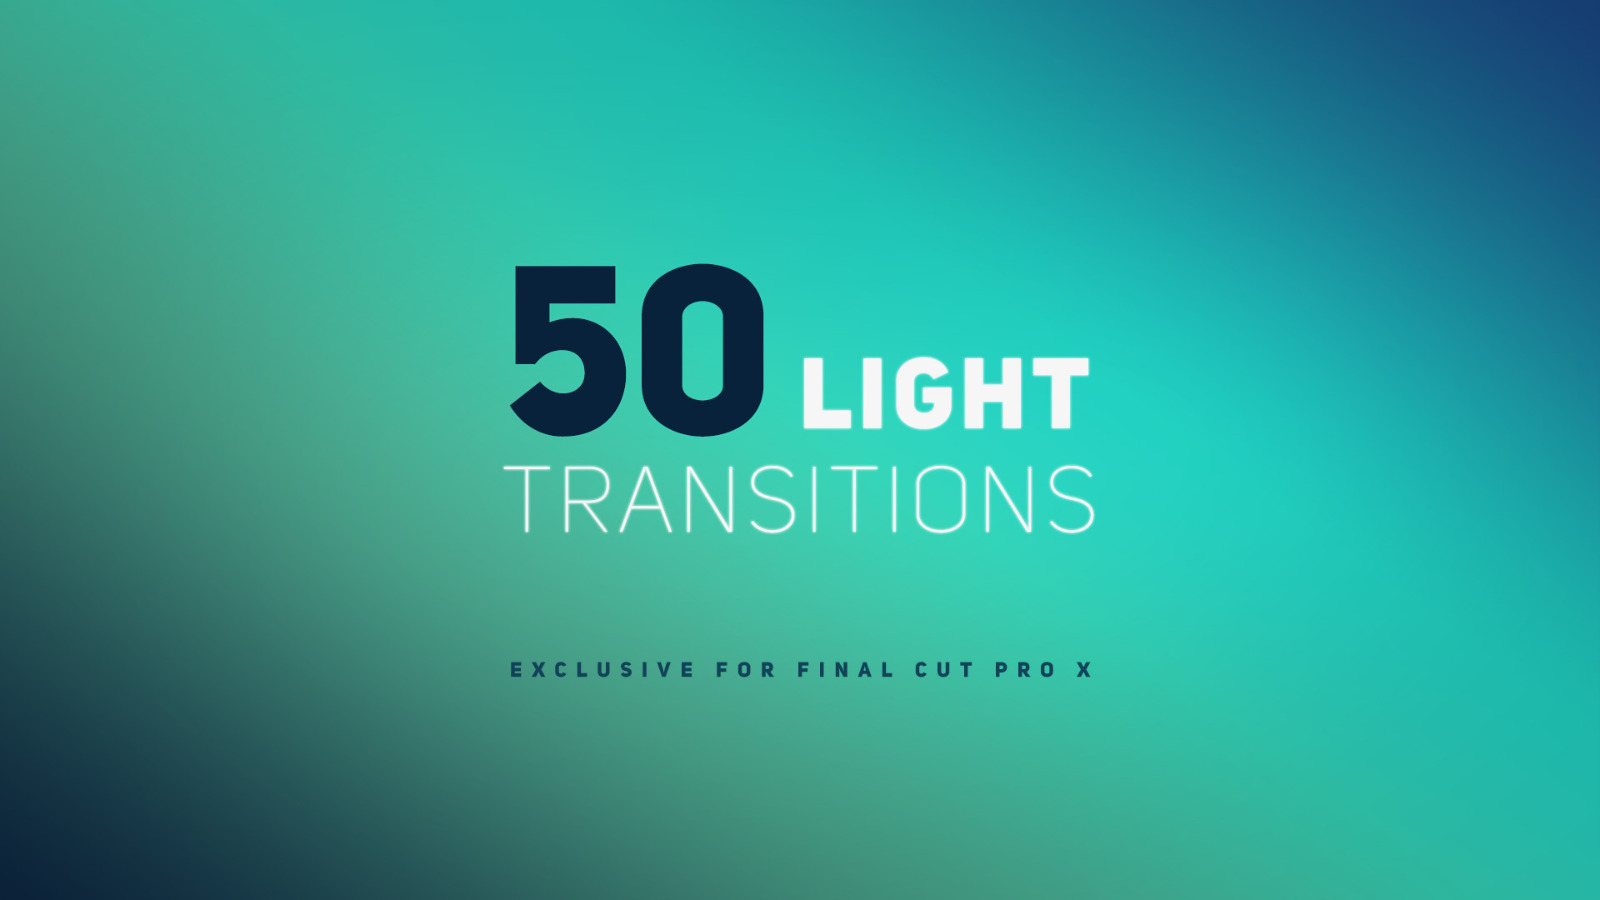 50 Light Transitions